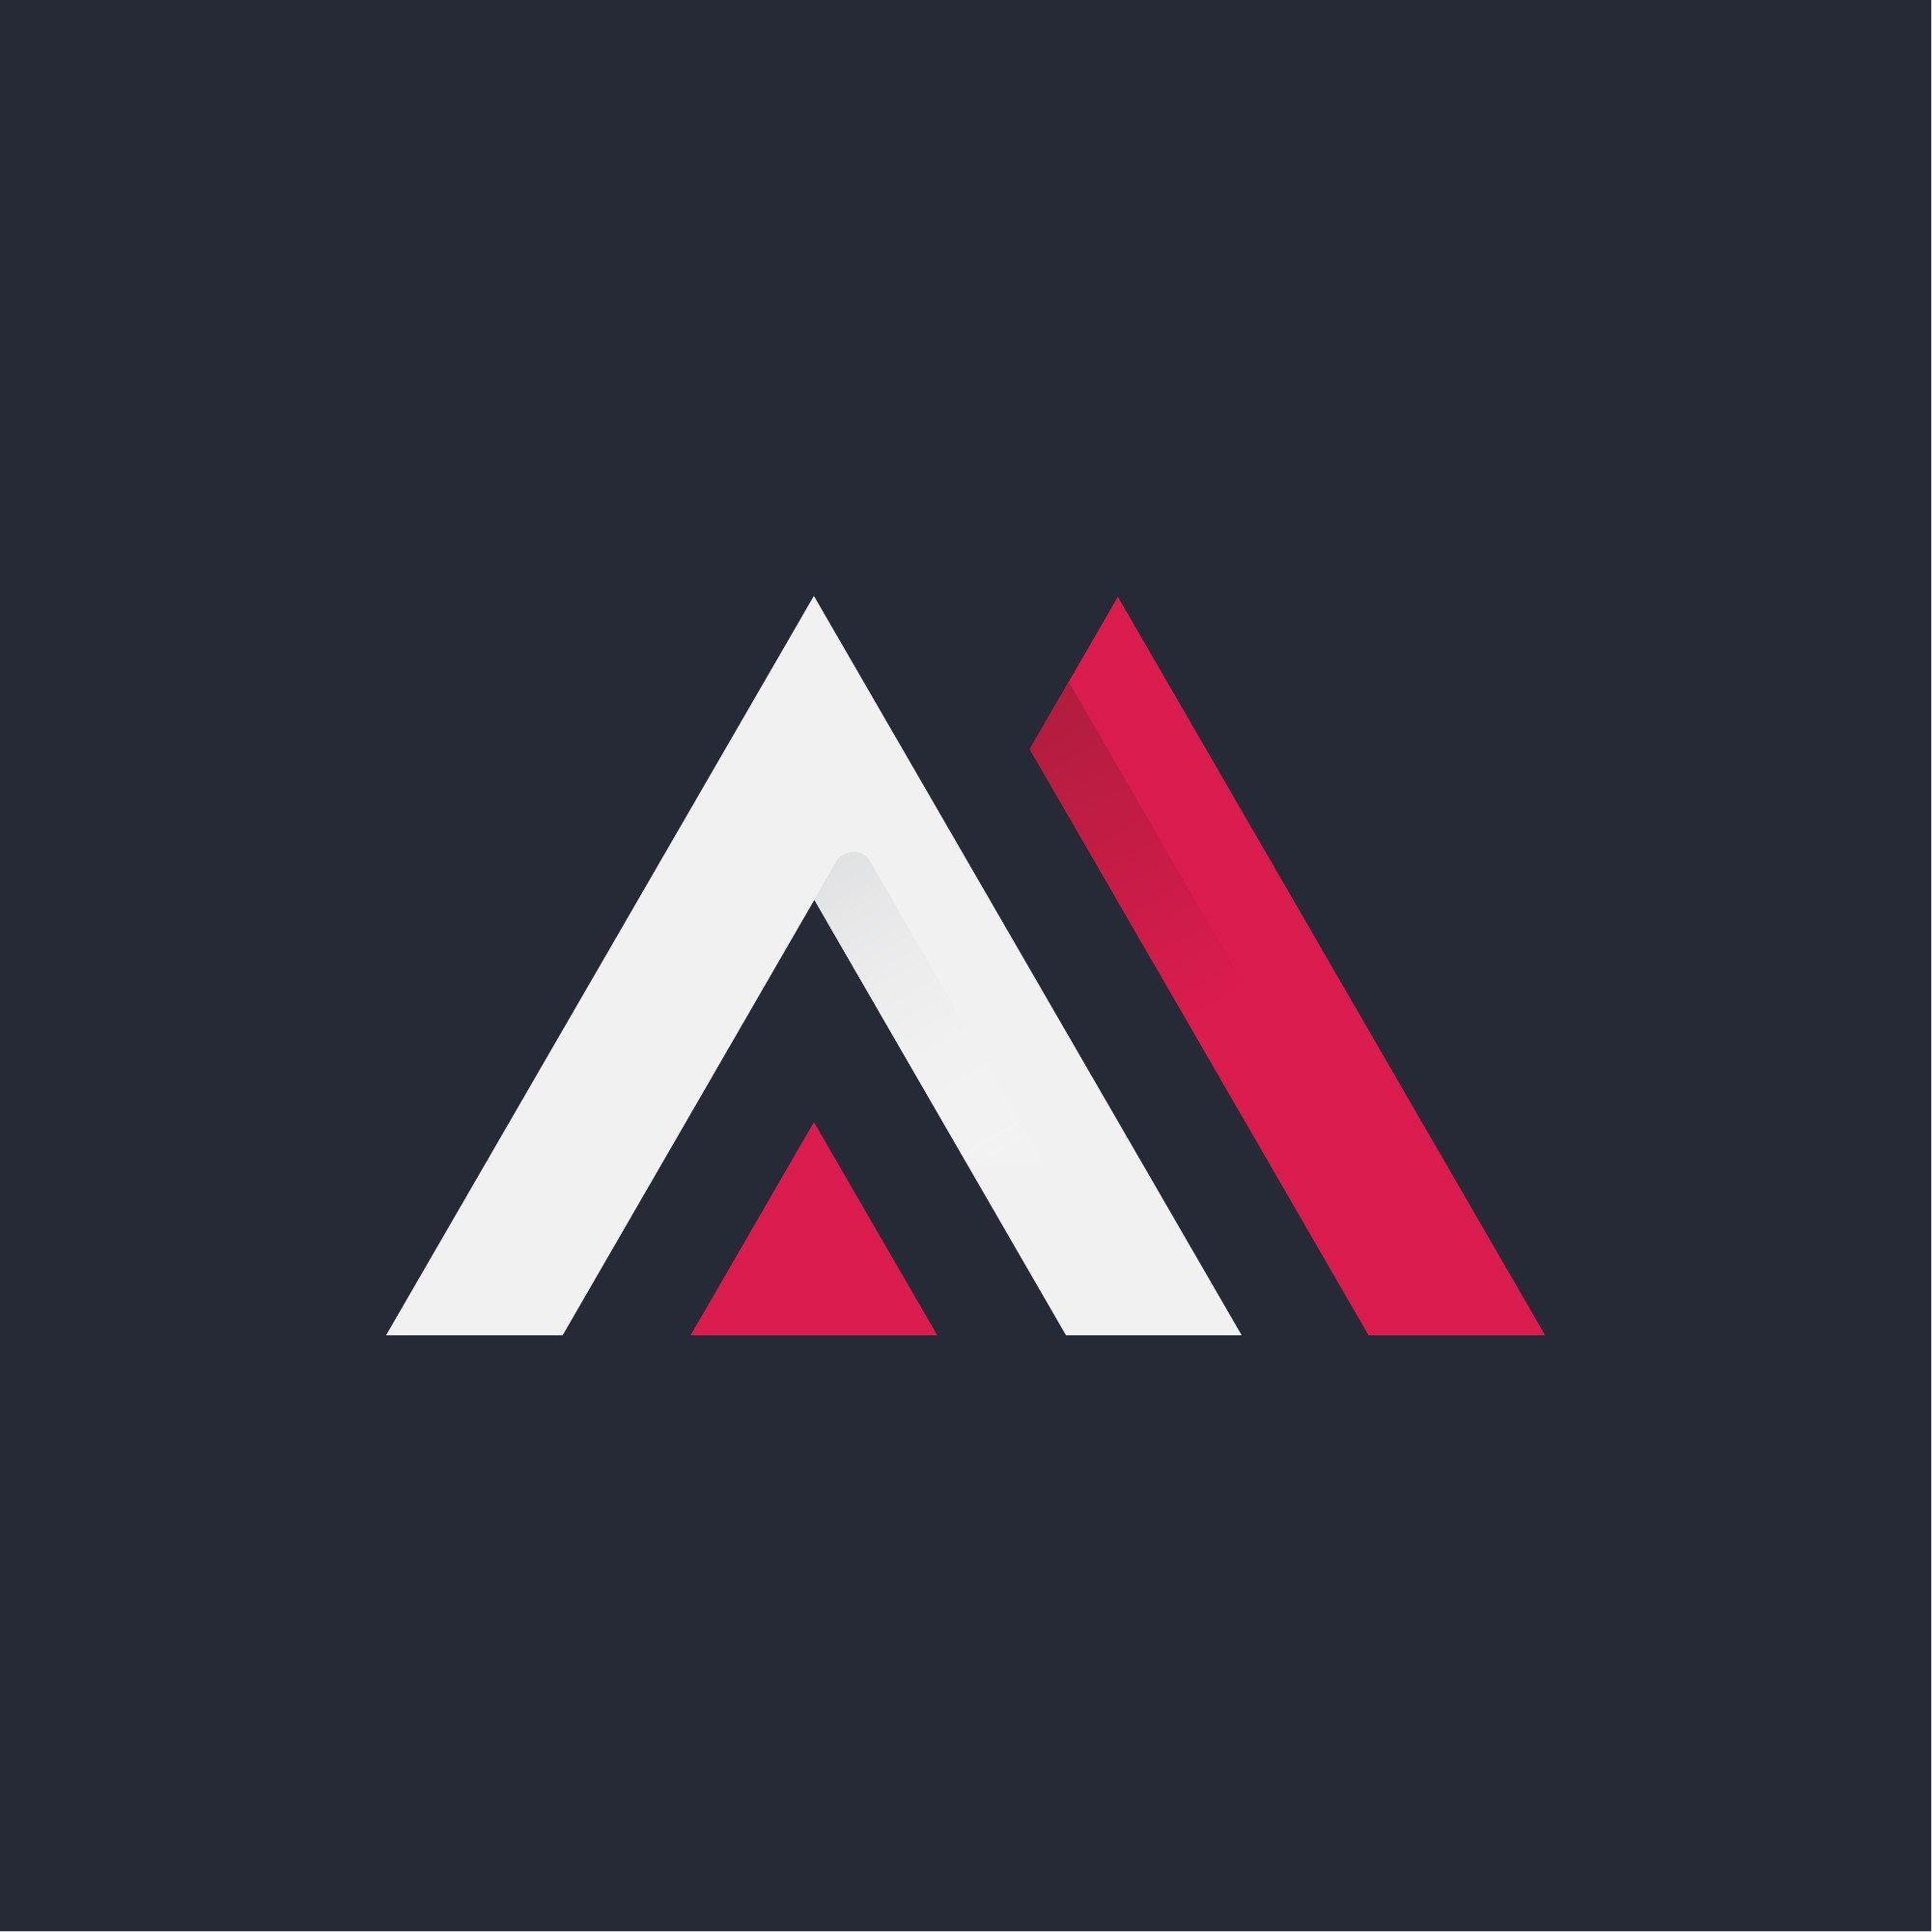 Legit looking logo for a boutique mobile app consulting company